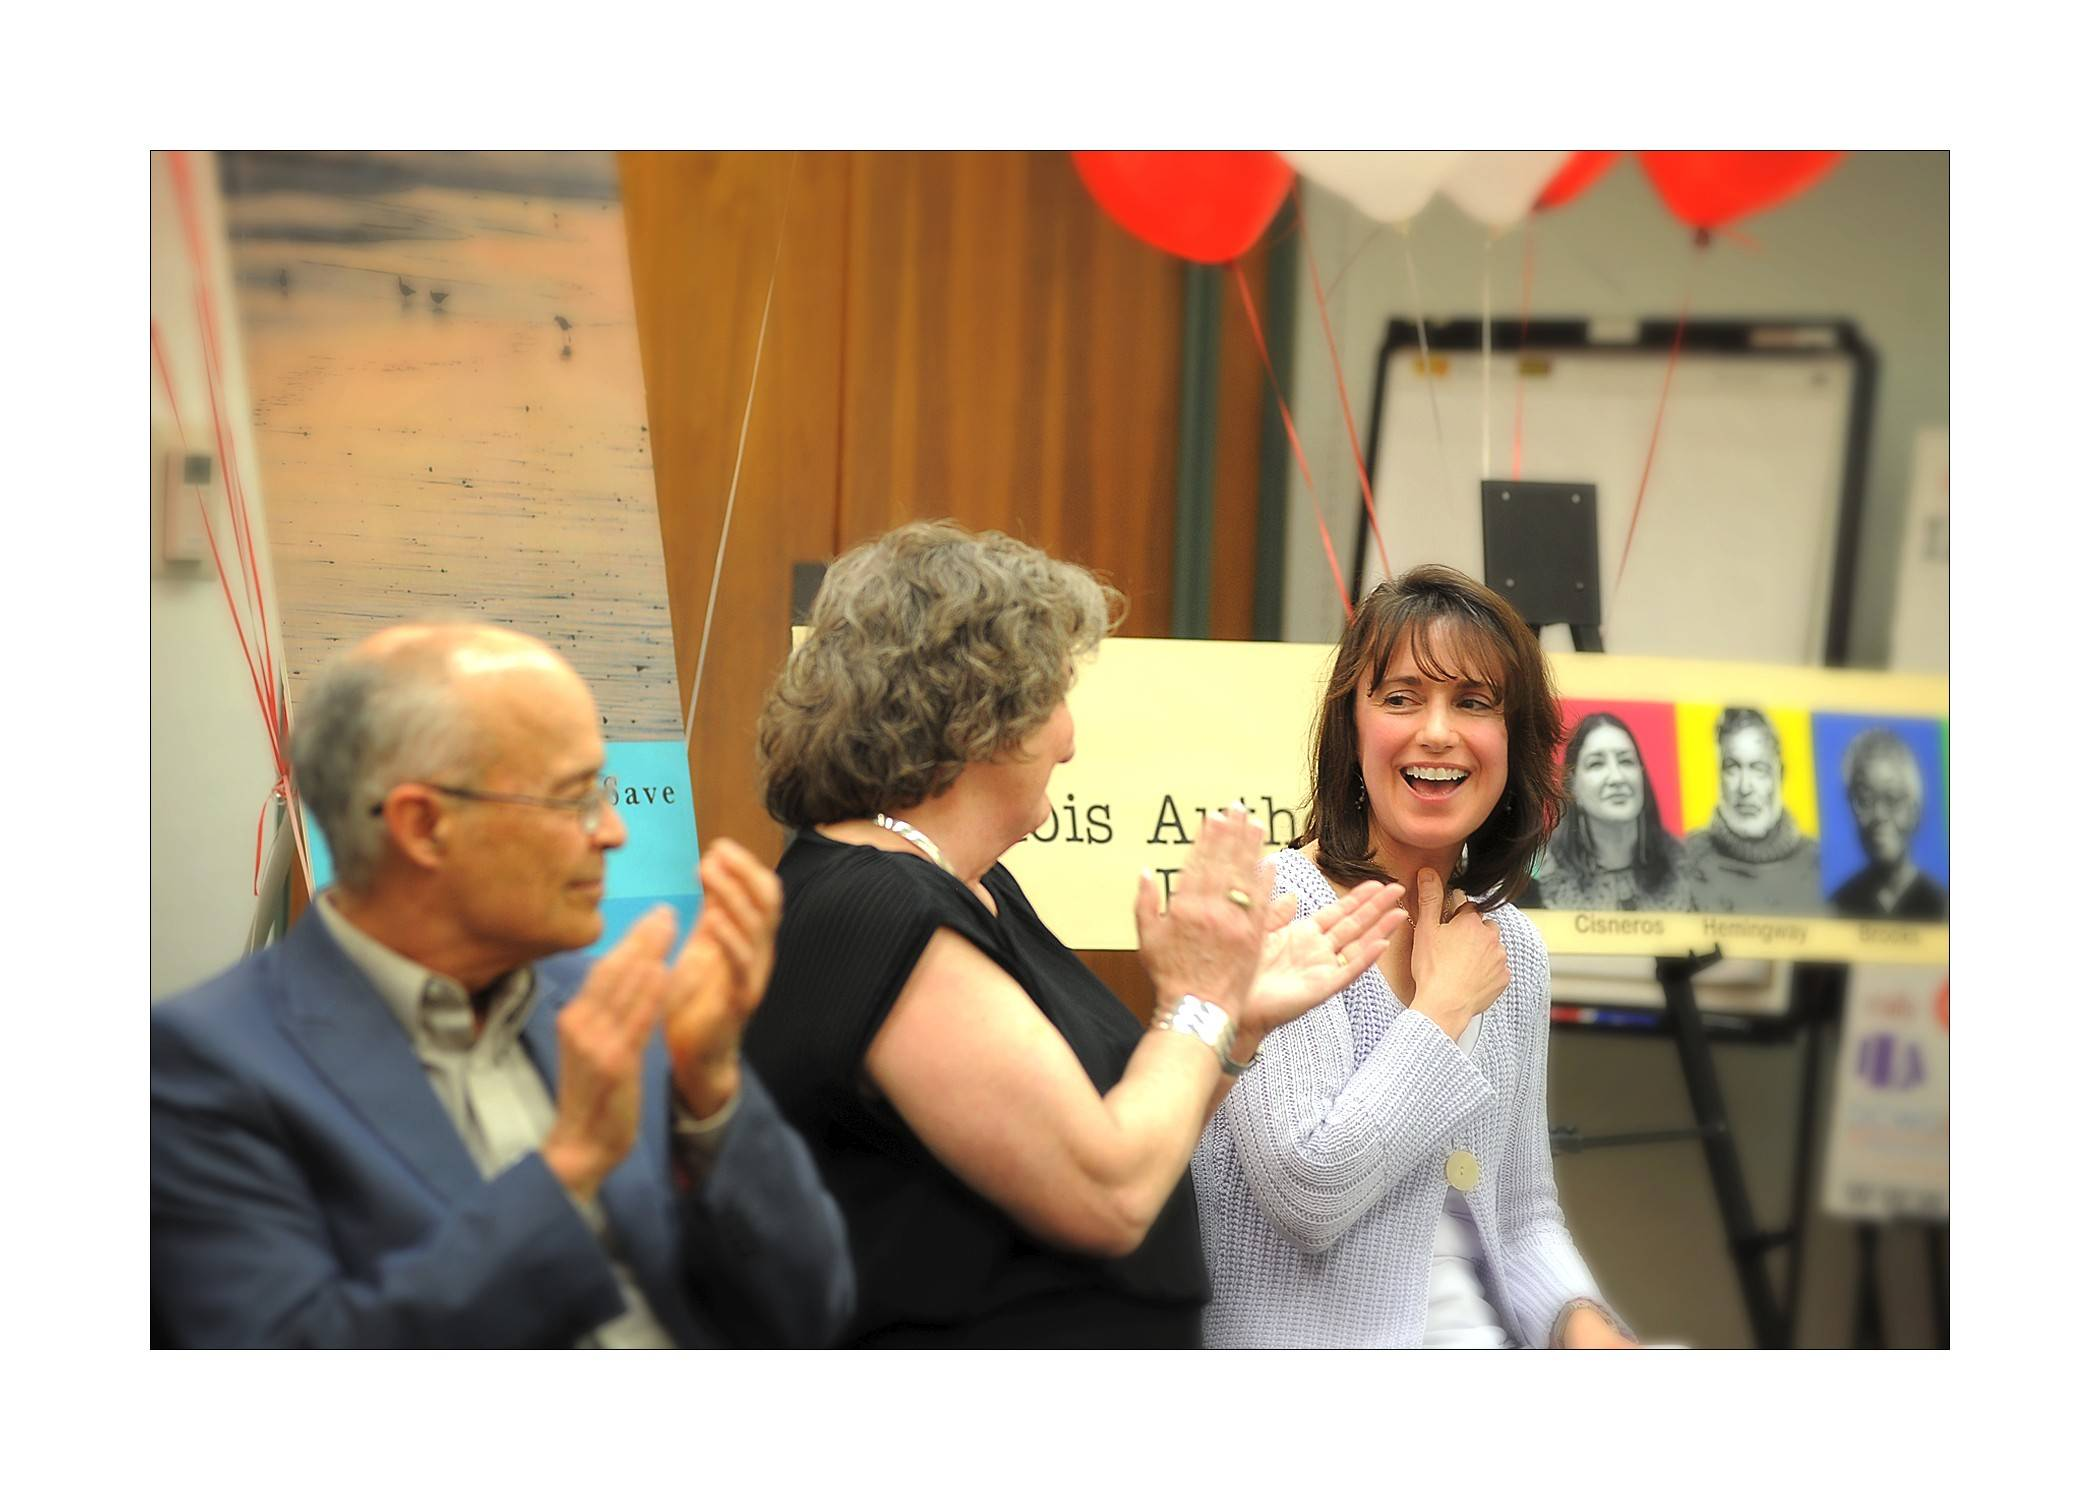 Joanne Zienty, right, of Wheaton reacts to being the winner of the Soon to be Famous Illinois Author award at a reception Wednesday at the Reaching Across Illinois Library System offices in Burr Ridge. Seated next to her are the other two finalists, Rick Polad of Carol Stream and Mary Hutchings Reed of Chicago.